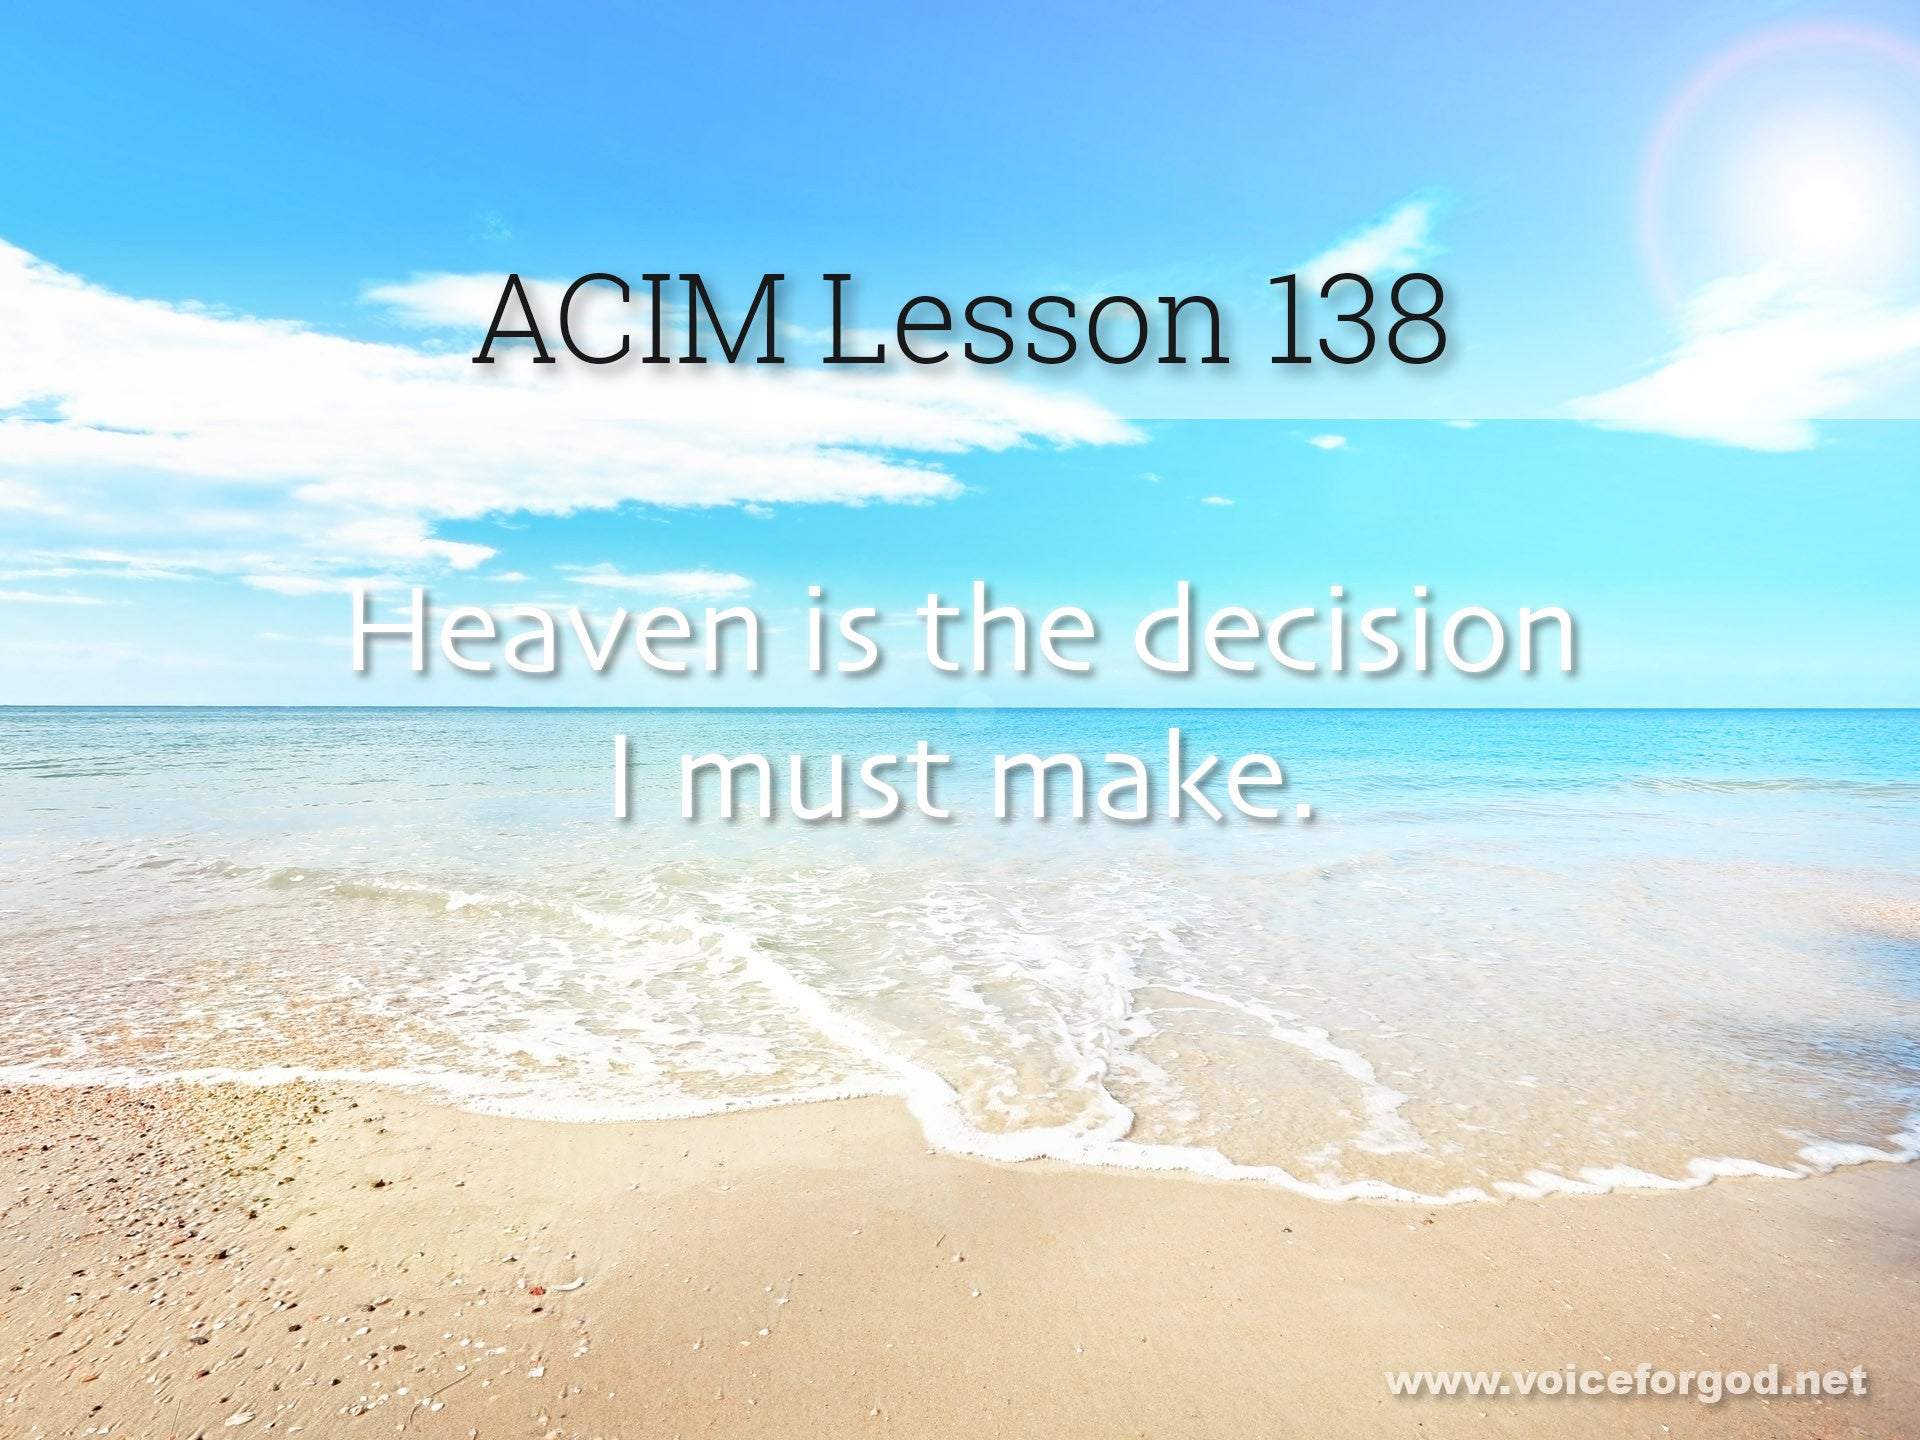 ACIM Lesson 138 - A Course in Miracles Workbook Lesson 138